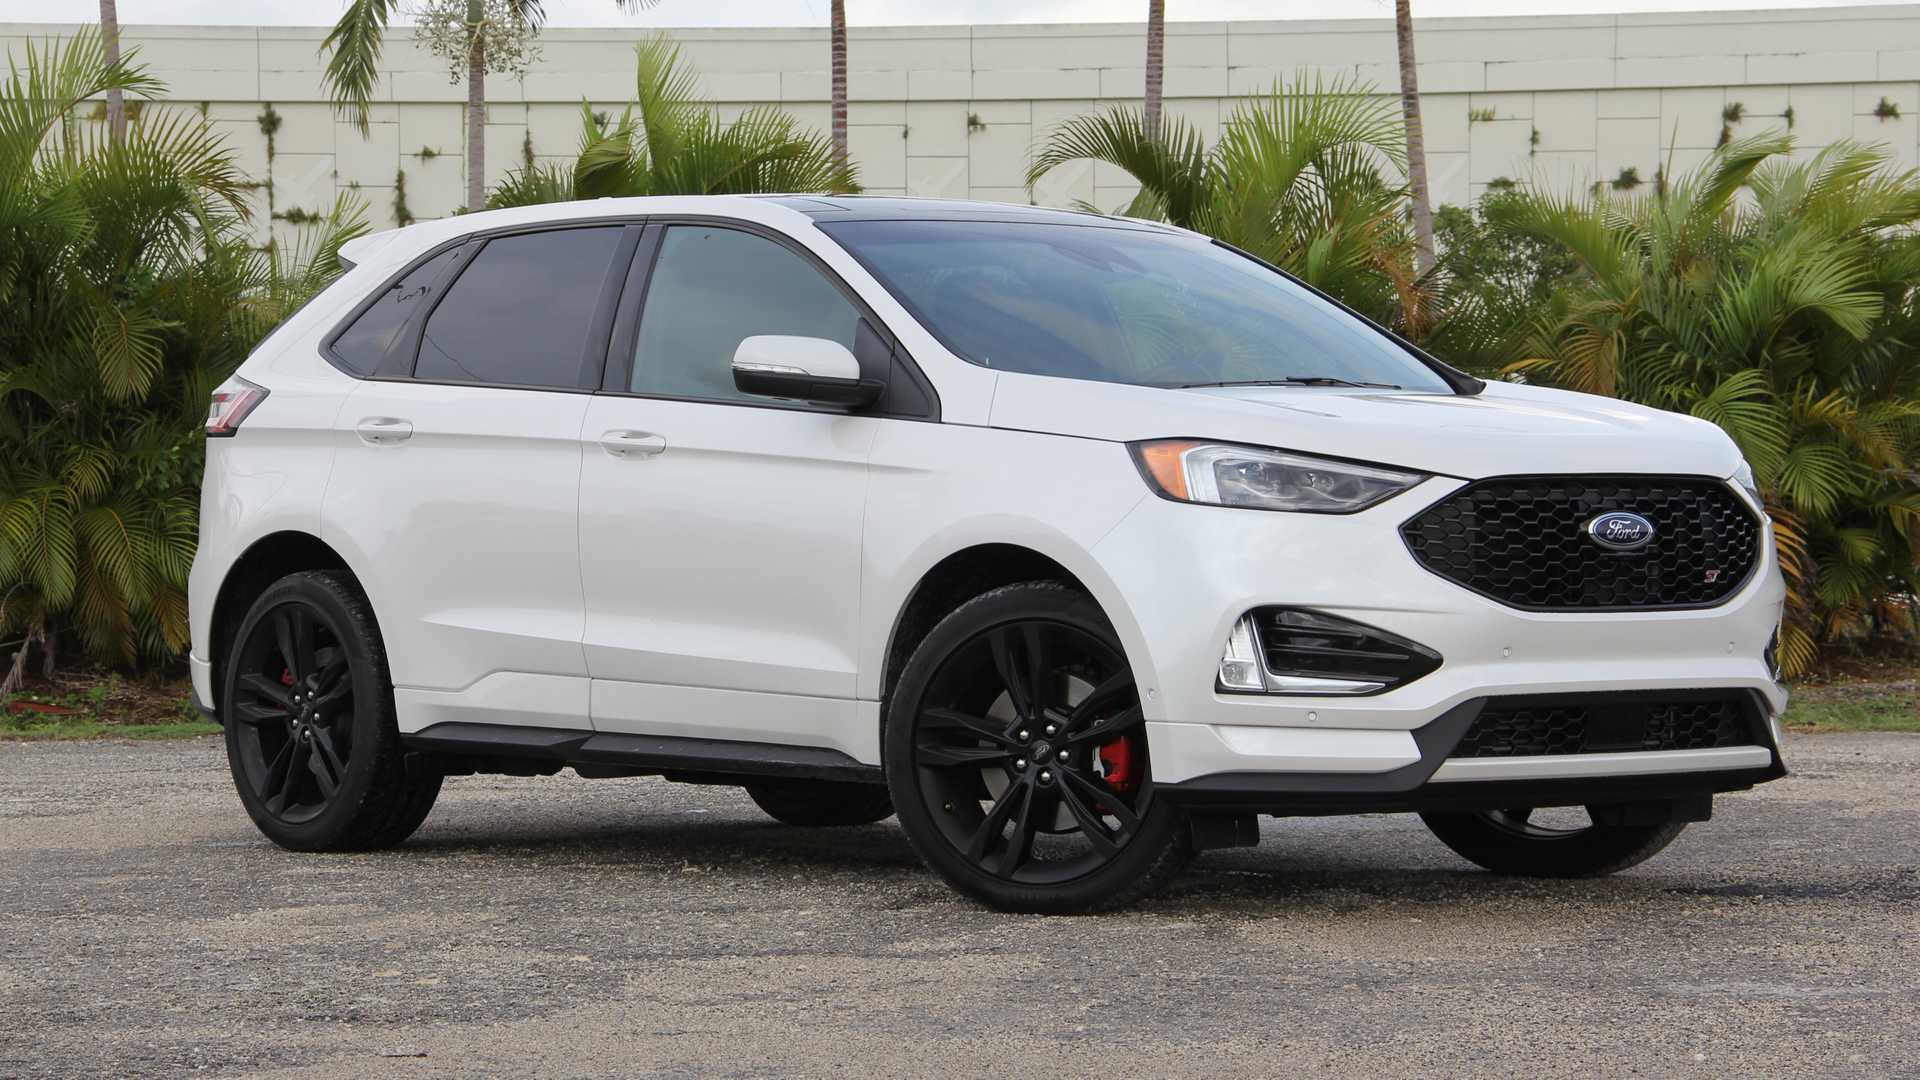 87 Best Review 2019 Ford Edge Sport Price and Review for 2019 Ford Edge Sport